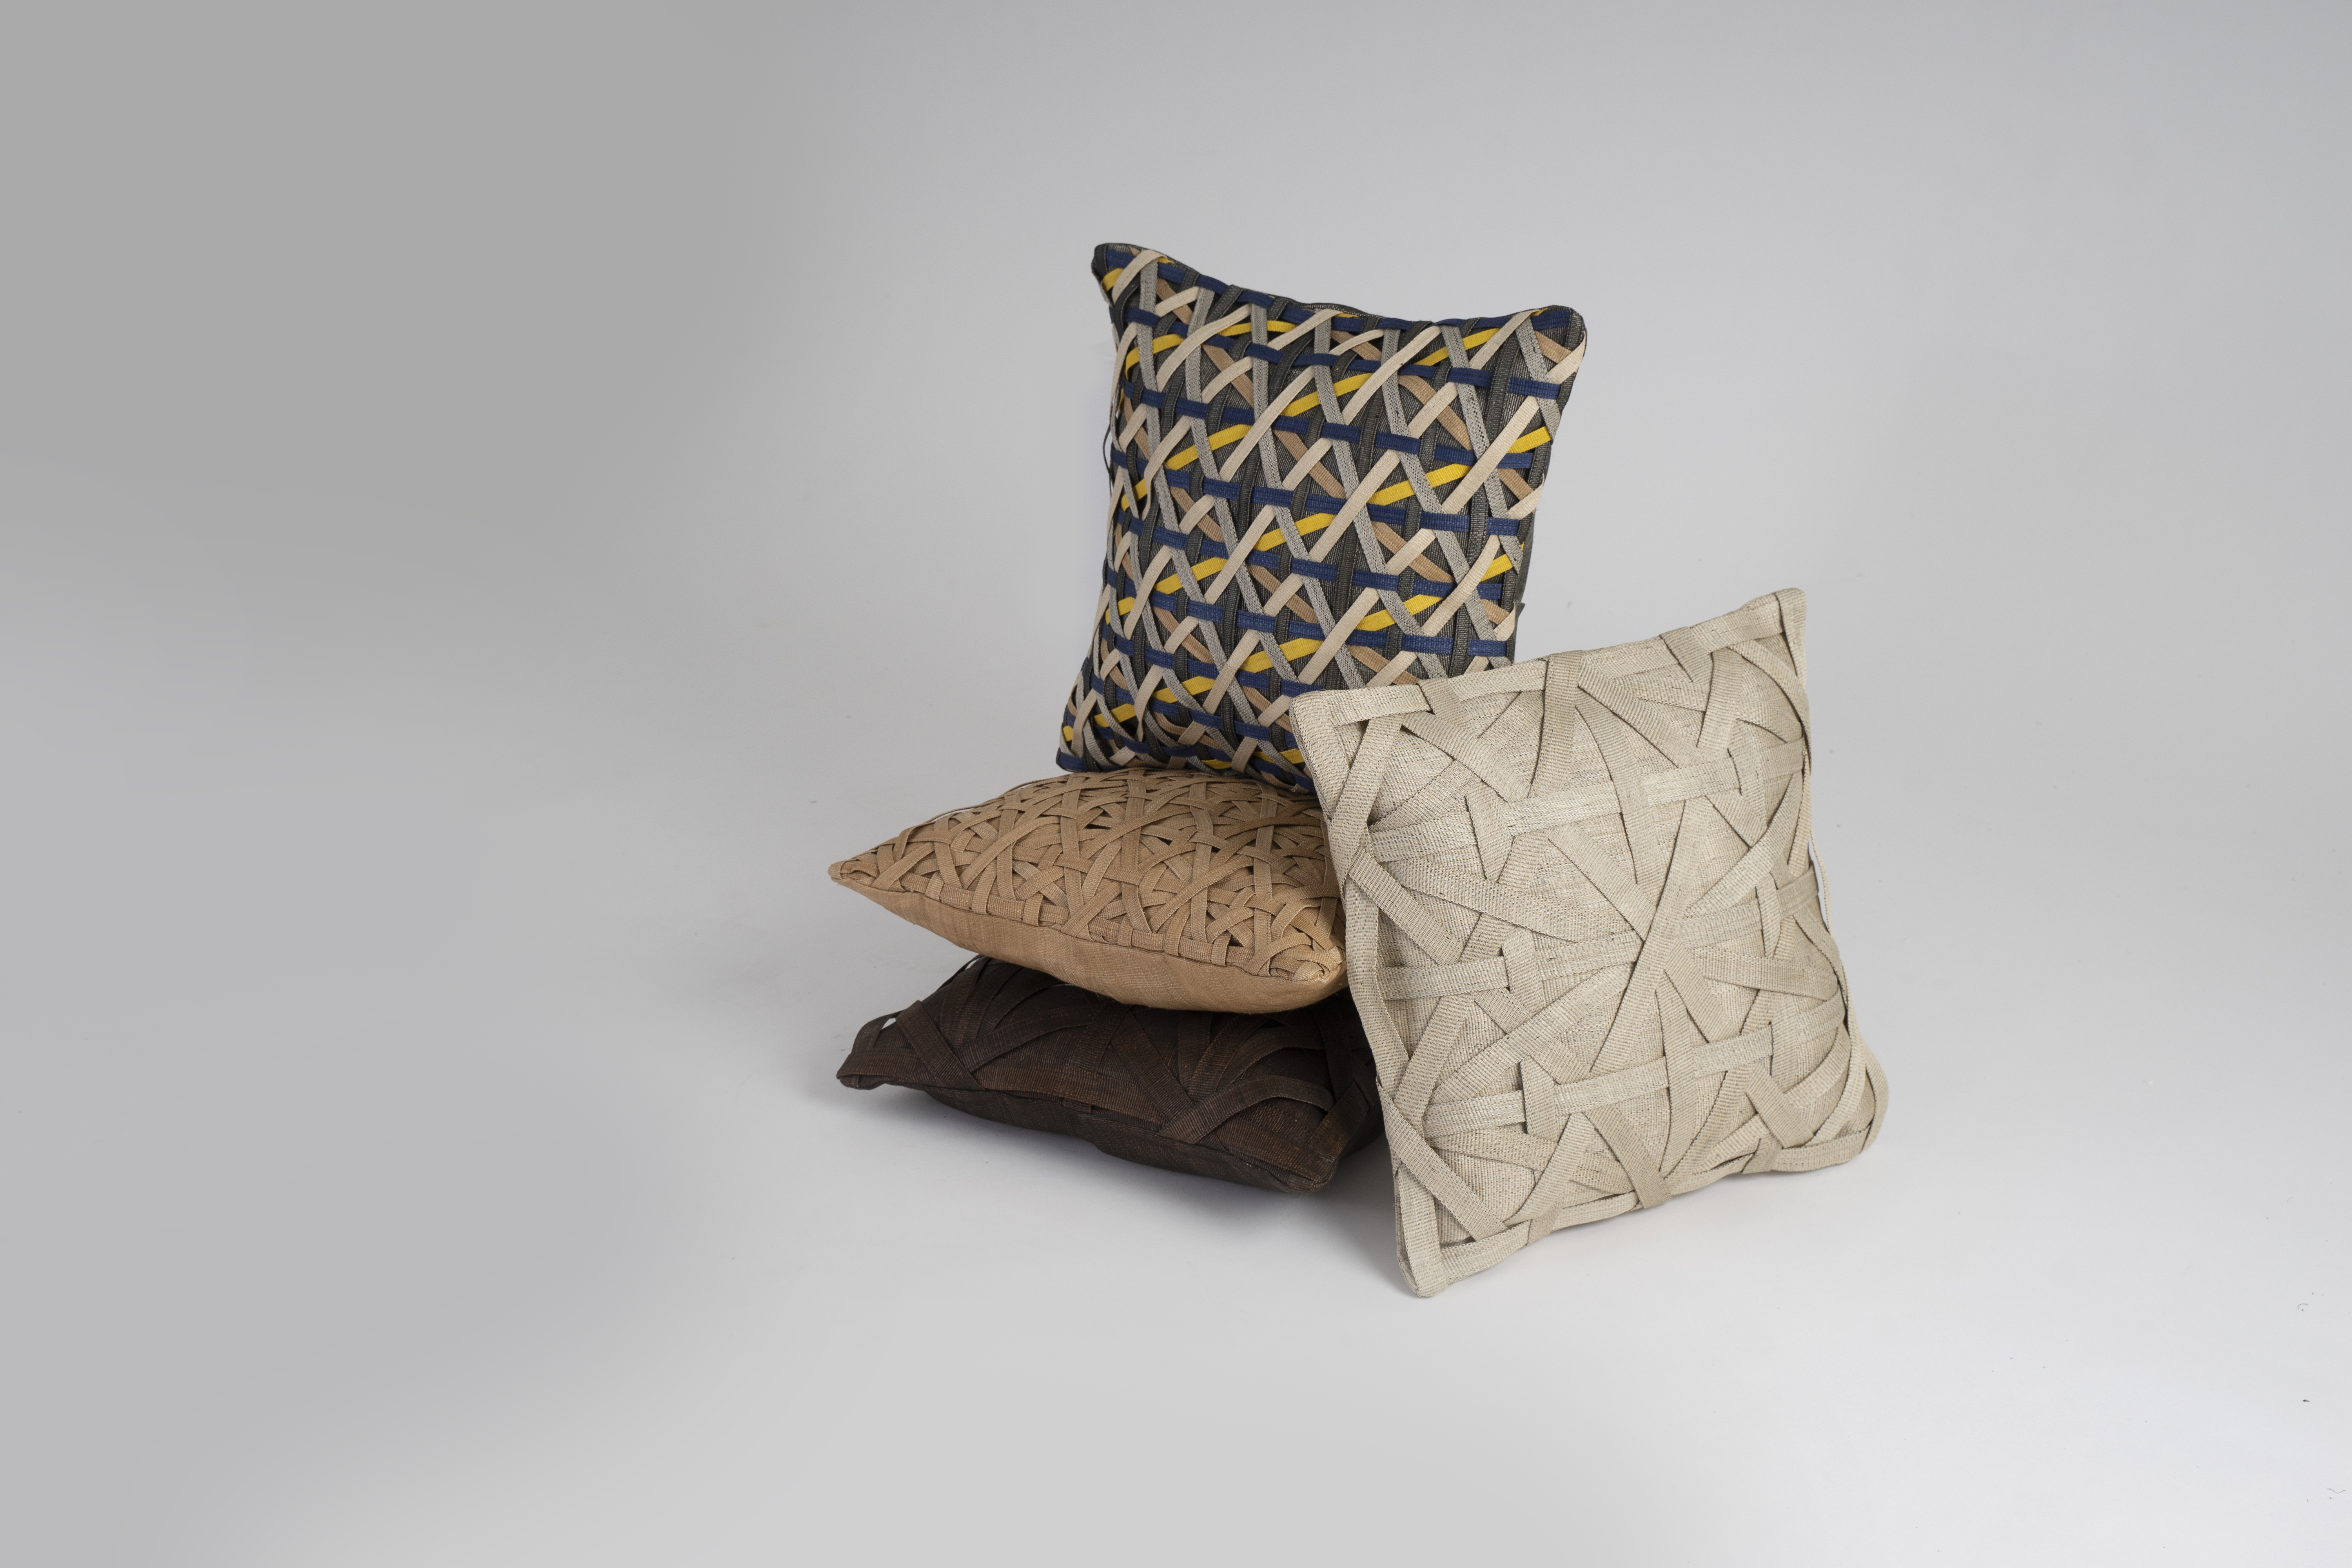 TADECO, Home Accessories, Wall Panels, Lamps, Tabletops, Cushions, Lighting, Abaca